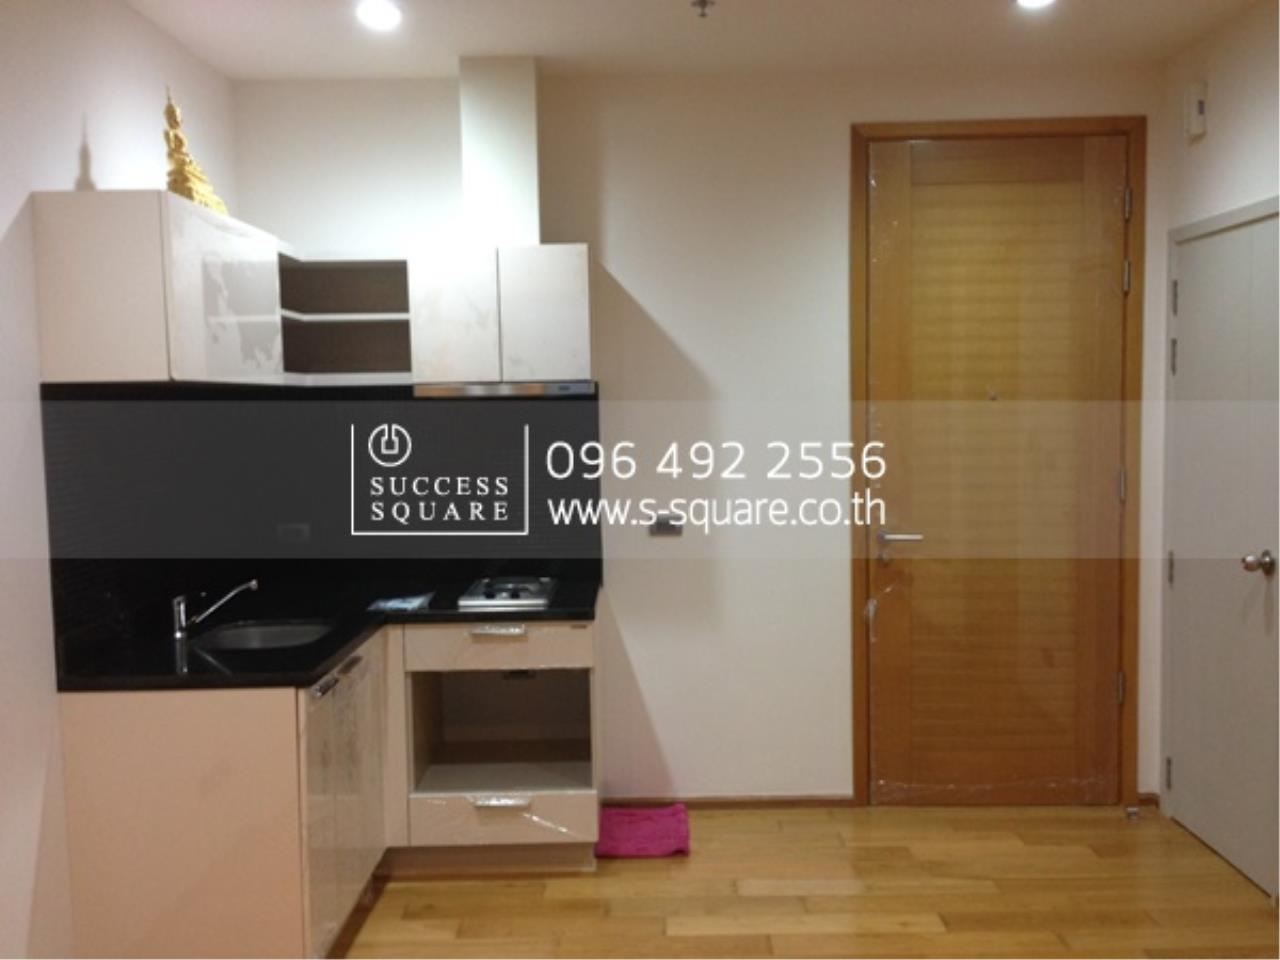 Success Square Agency's Fuse Sathorn-Taksin, Condo For Sale 1 Bedrooms 5